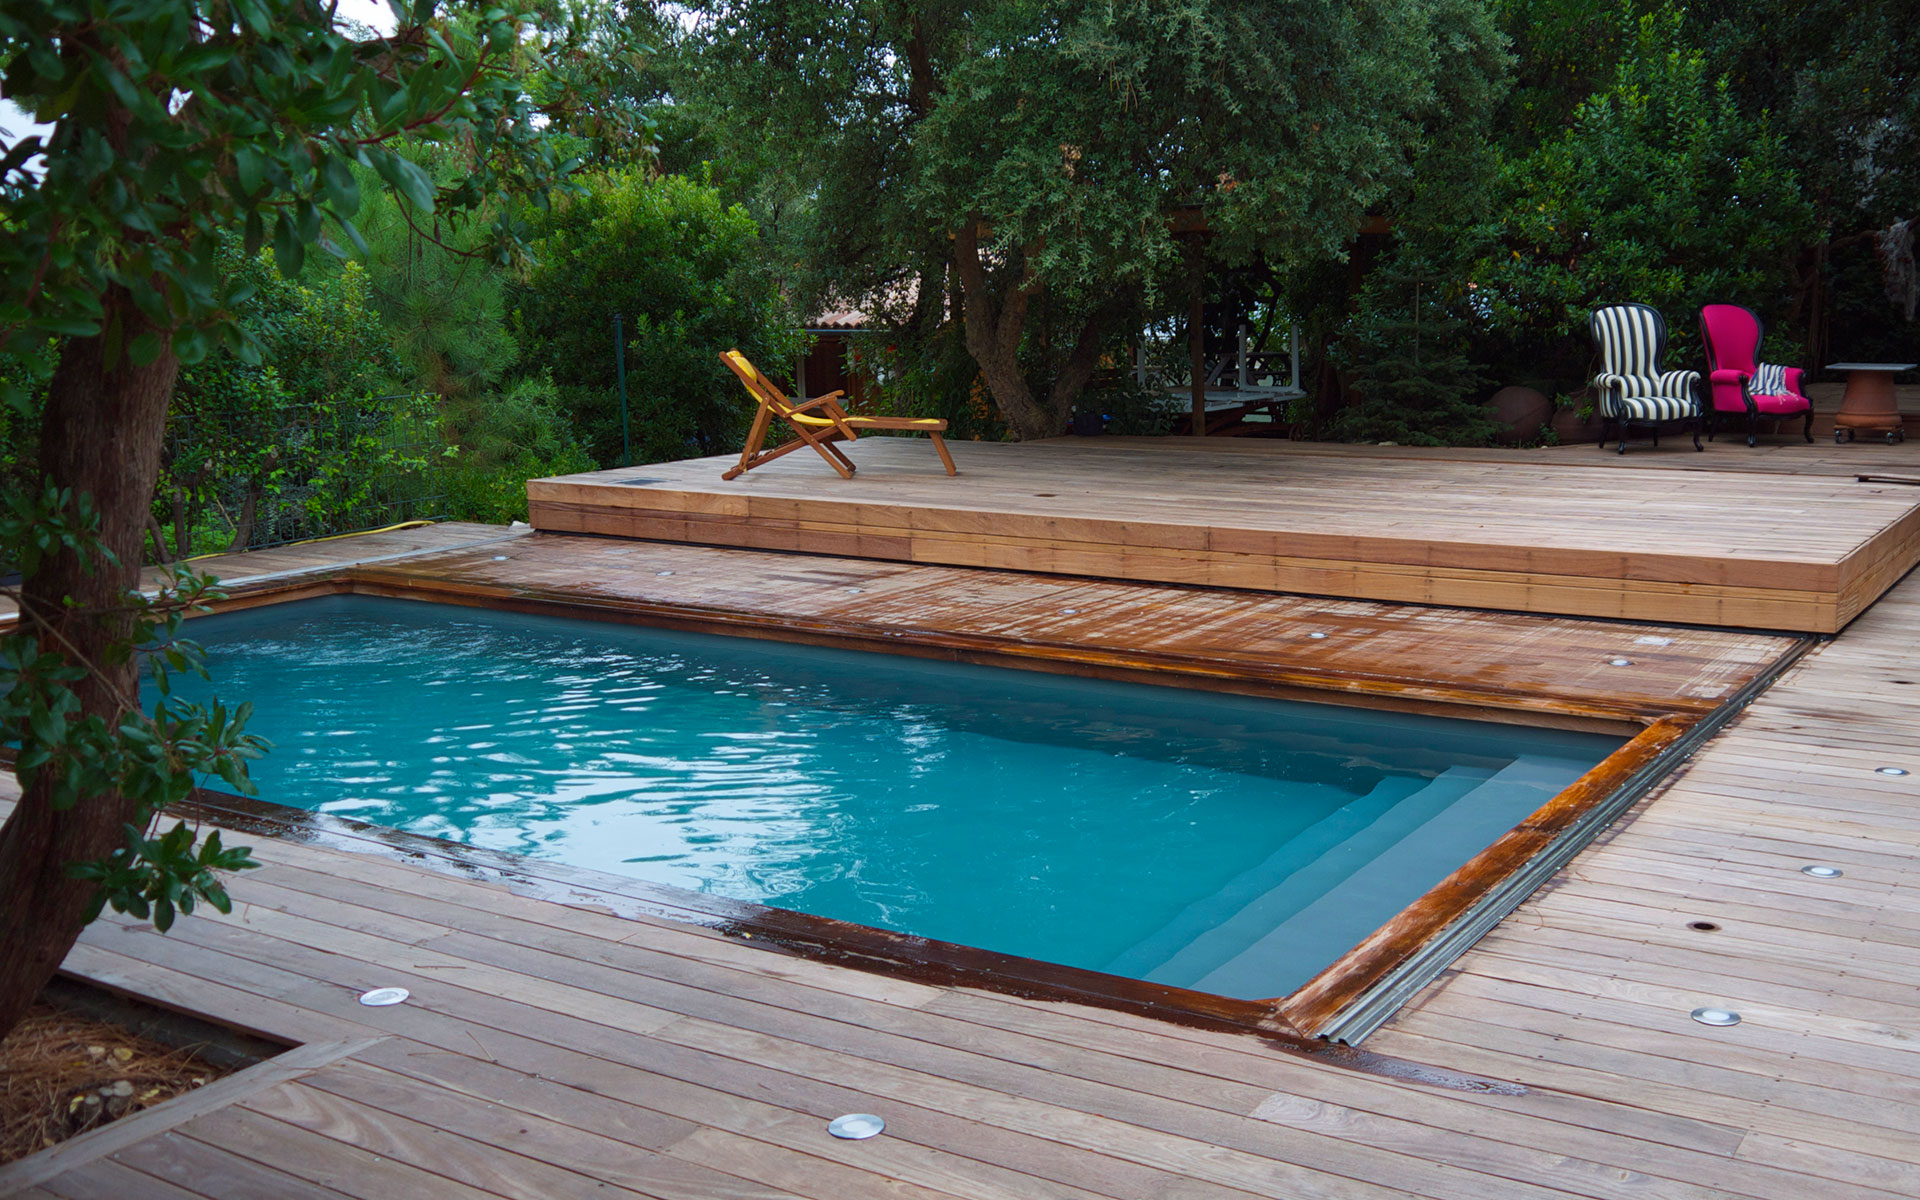 Terrasse mobile pour piscine hidden pool fond mobile for Piscine sol mobile